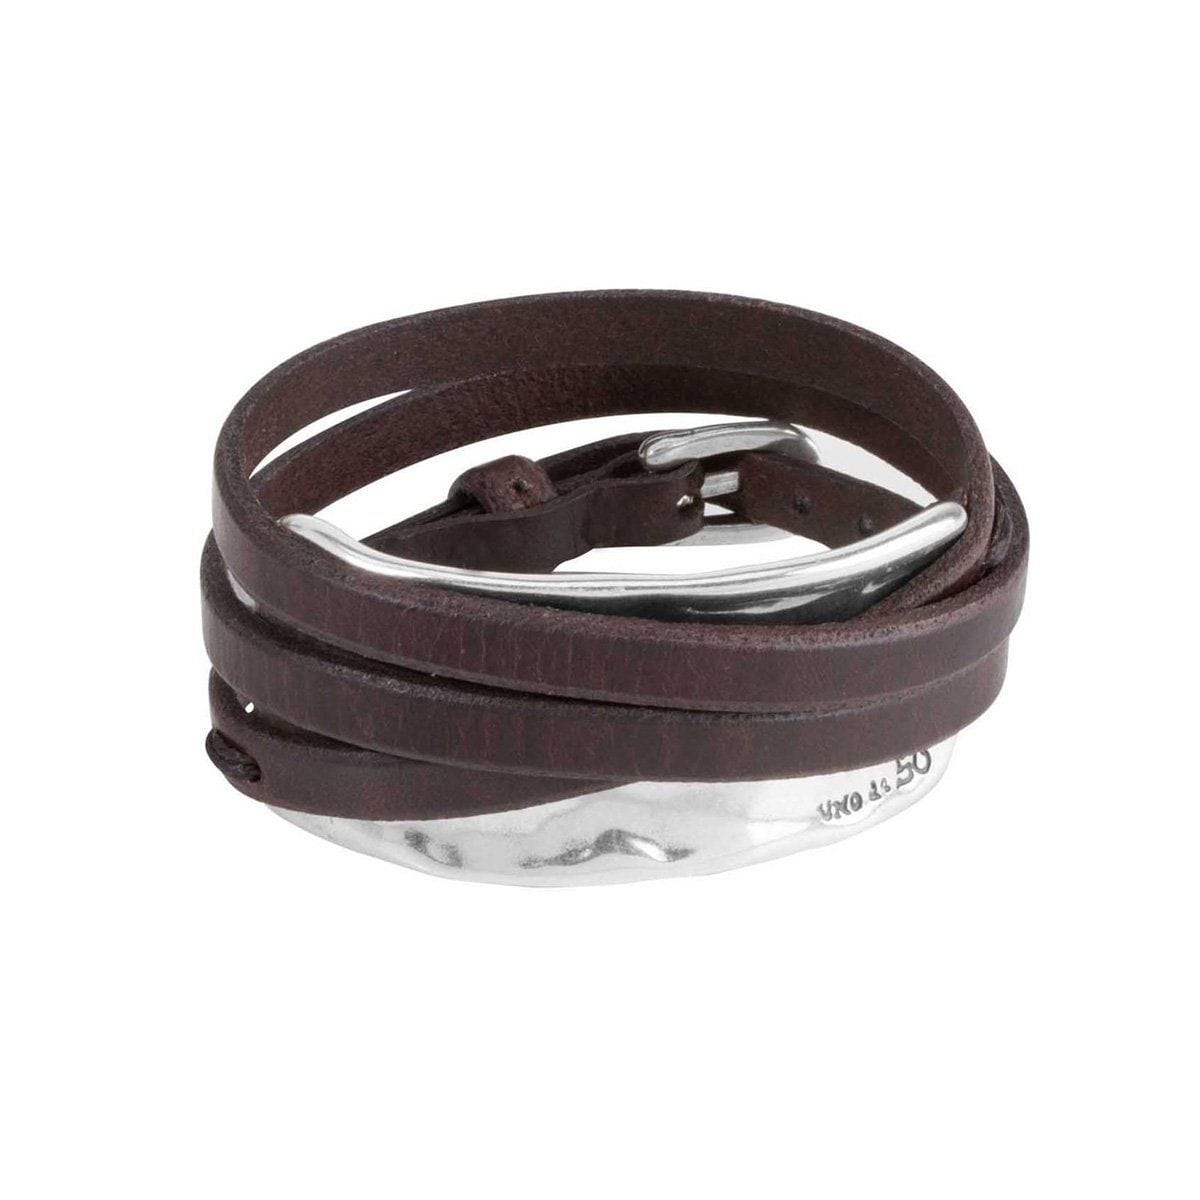 Leather & Silver Bracelet - PUL1178MARMTL0M